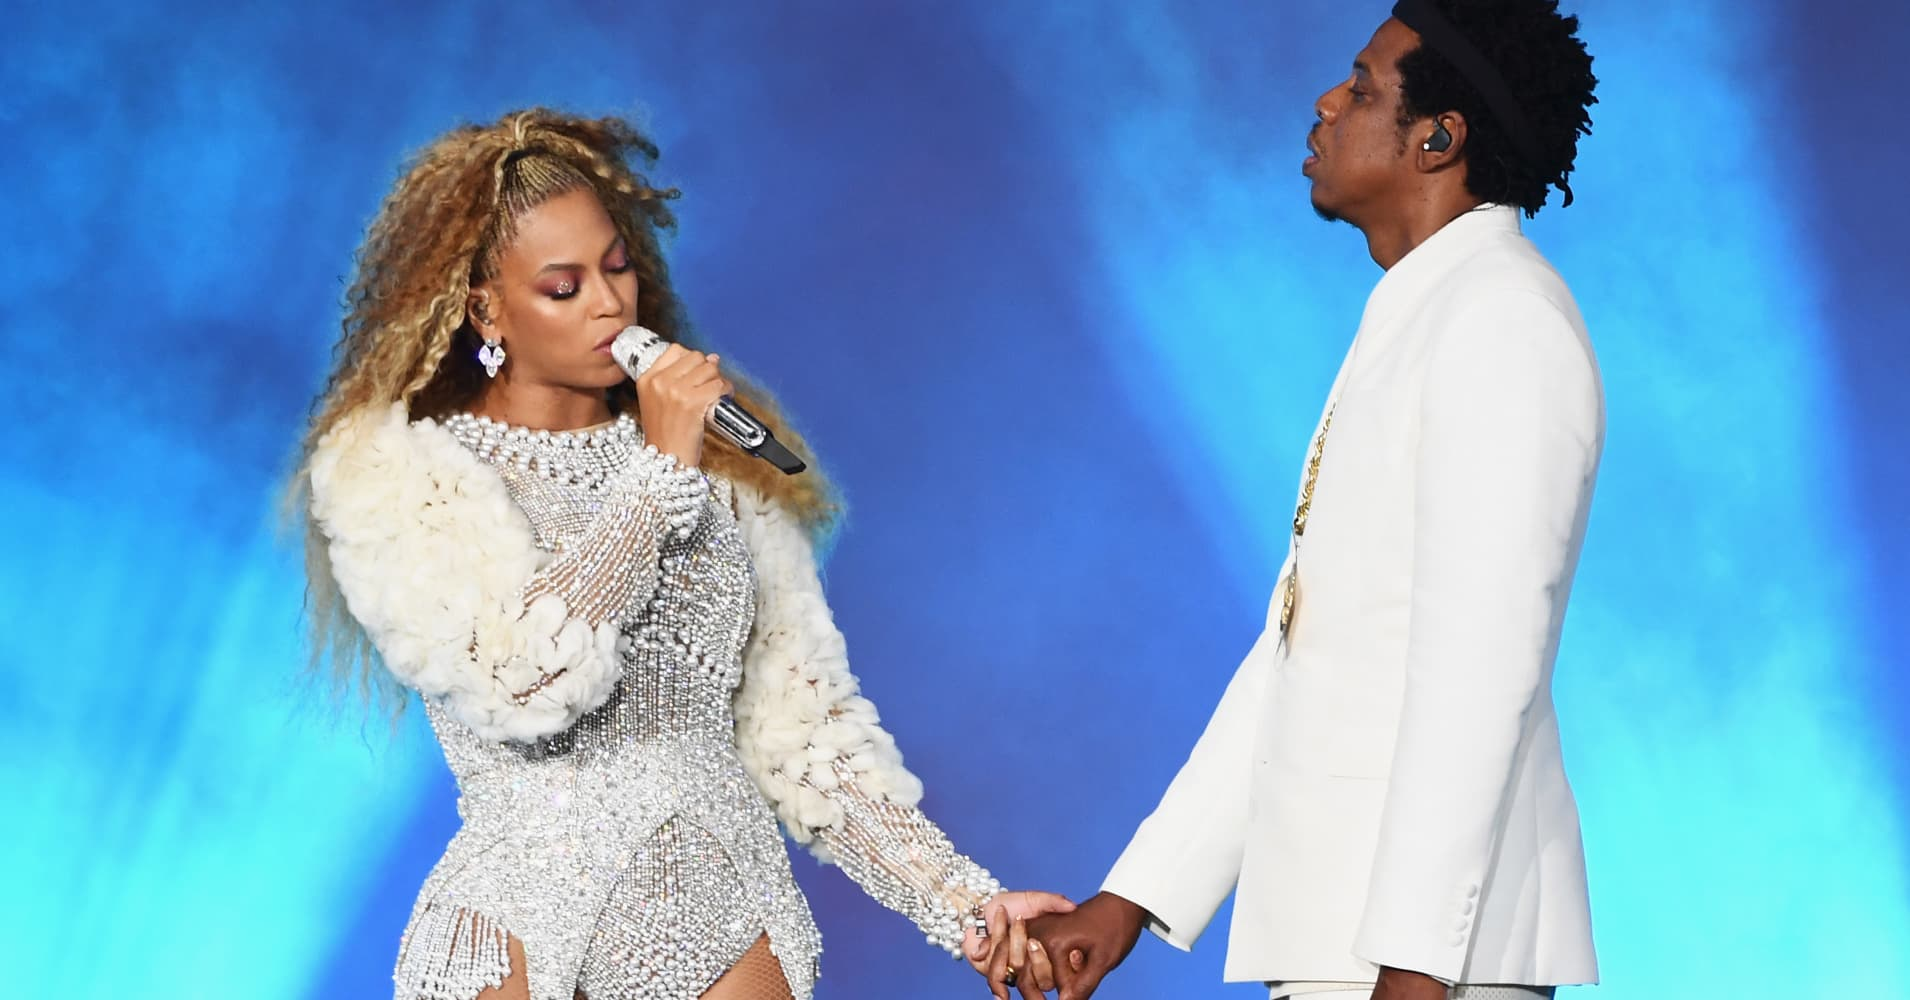 Beyonce and Jay-Z perform onstage during the 'On The Run II' Tour.